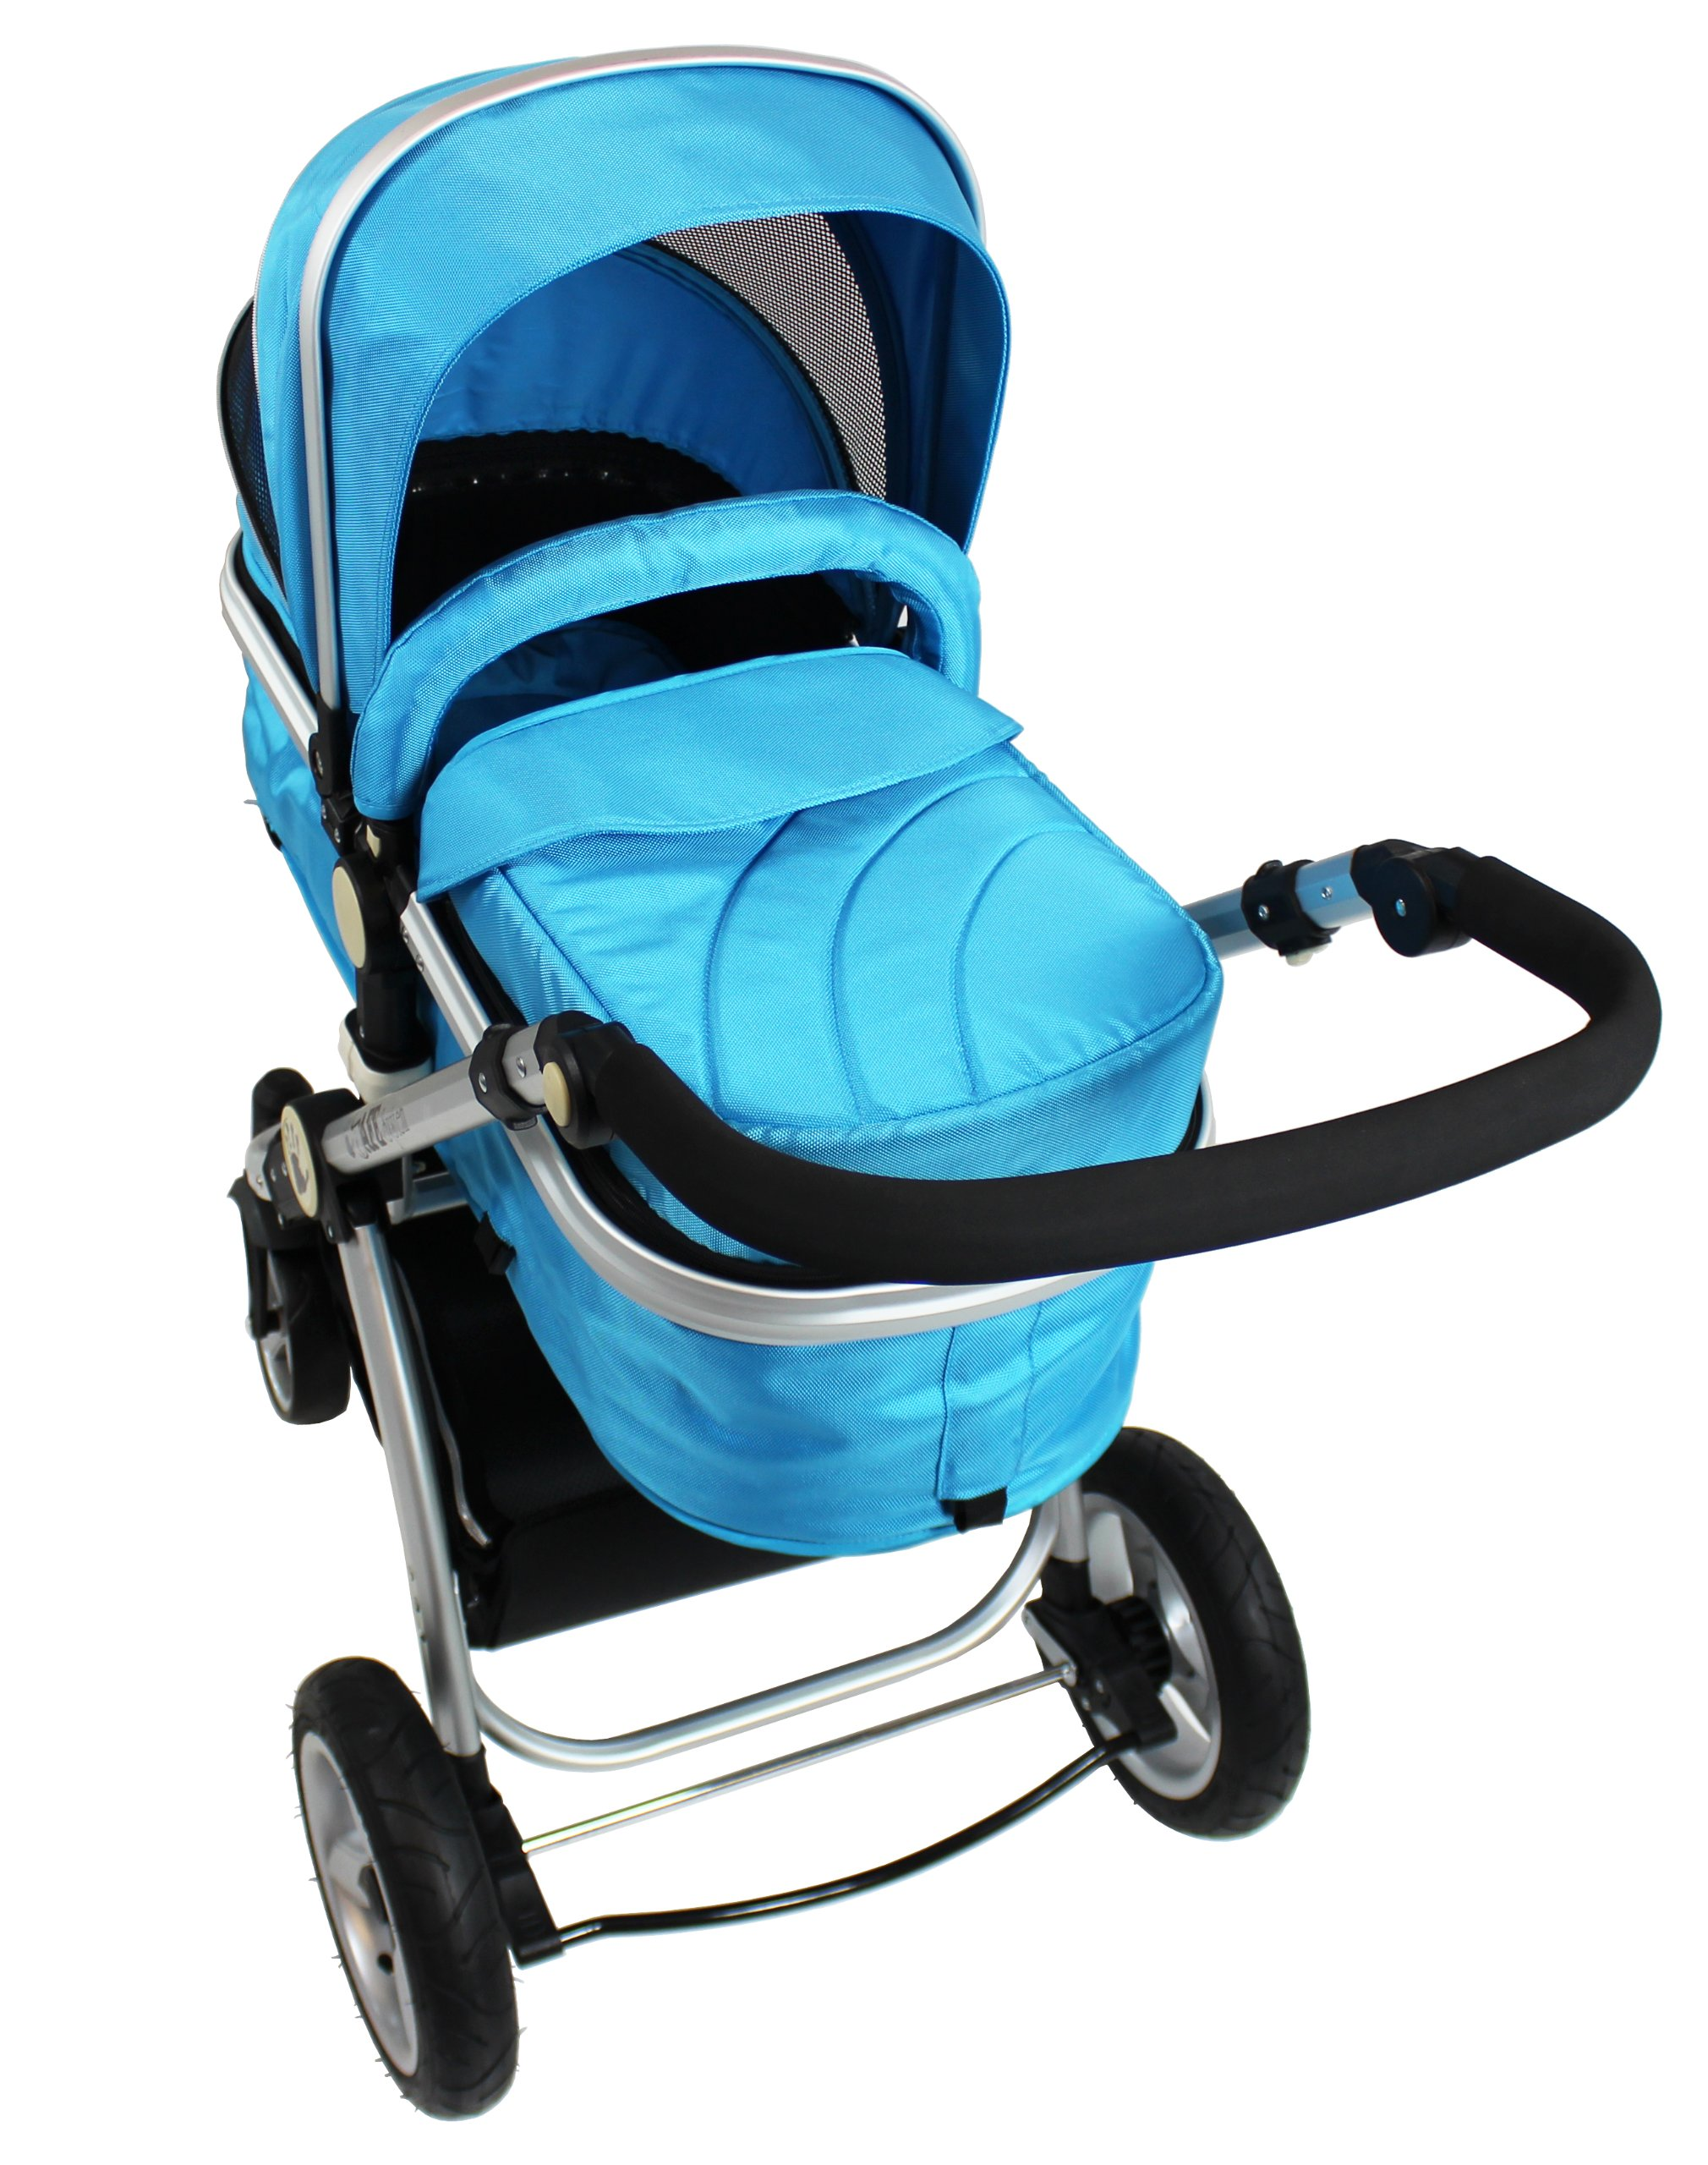 iSafe 2 in 1 Baby Pram System Complete (Ocean) iSafe We Are Proud To Present One Of The Finest 2in1 Stroller/Pram/Pramette/Travel System in the UK & Europe! 2 in 1 Stroller / Pram Extremely Easy Conversion To A Full Size Carrycot For Unrivalled Comfort. Complete With Boot Cover, Luxury Liner, 5 Point Harness, Raincover, Shopping Basket With Closed Ziped Top High Quality Rubber Inflatable Wheels With The Full All around Soft Suspension For That Perfect Unrivalled Ride 8